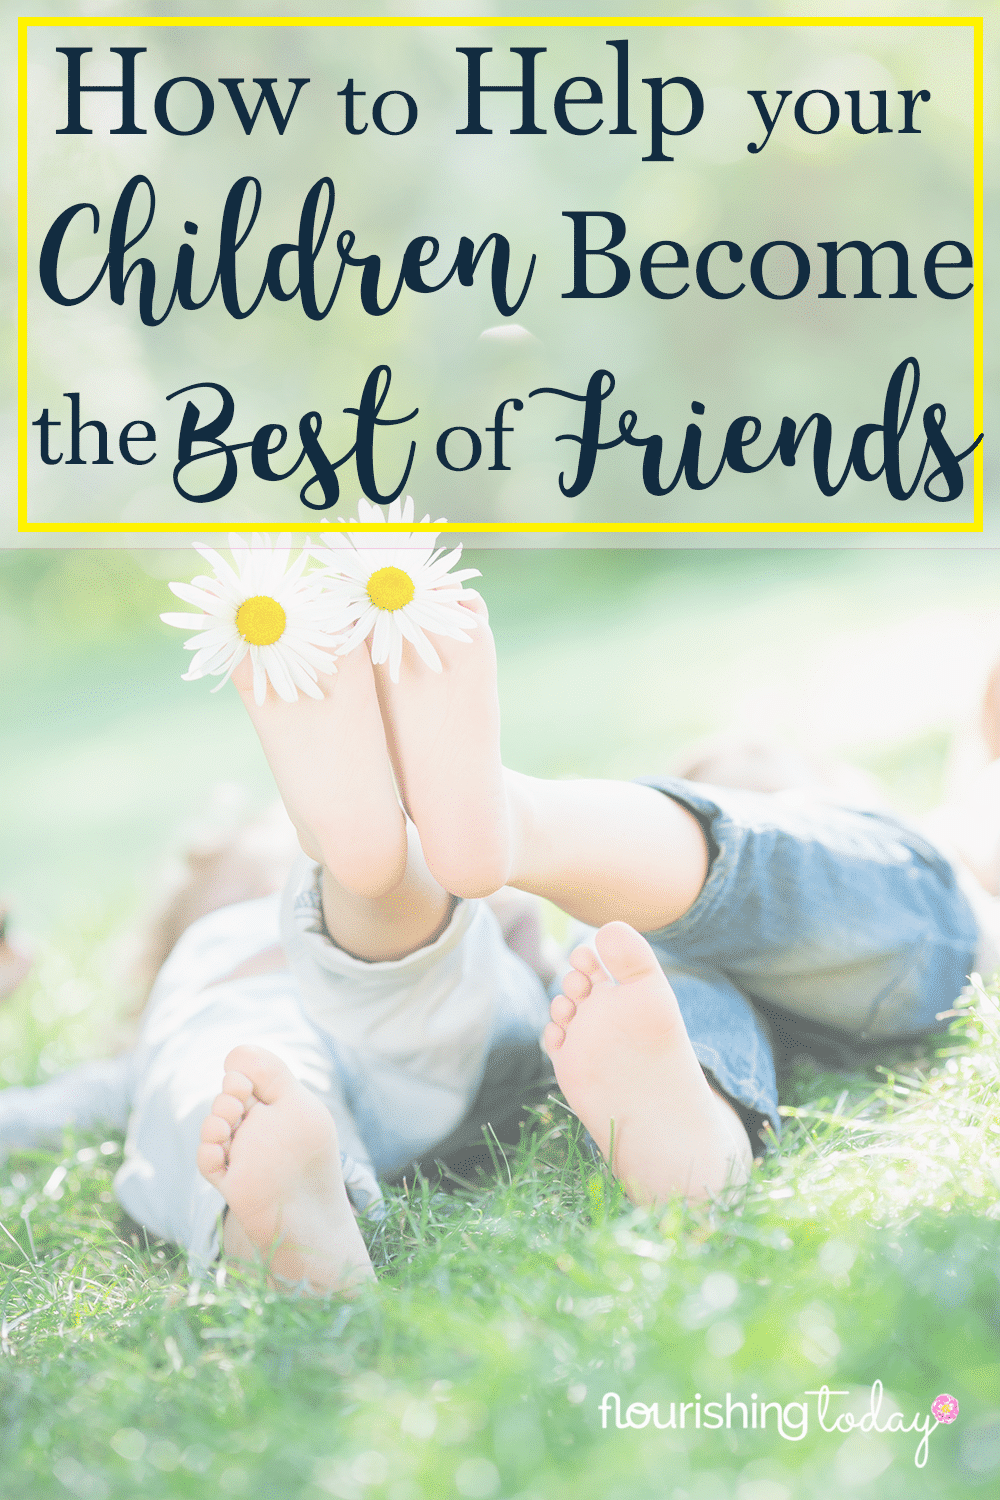 How do you make brothers and sisters best friends? It's not easy to nurture friendships among siblings. Here are a few tips to cultivate those friendships.